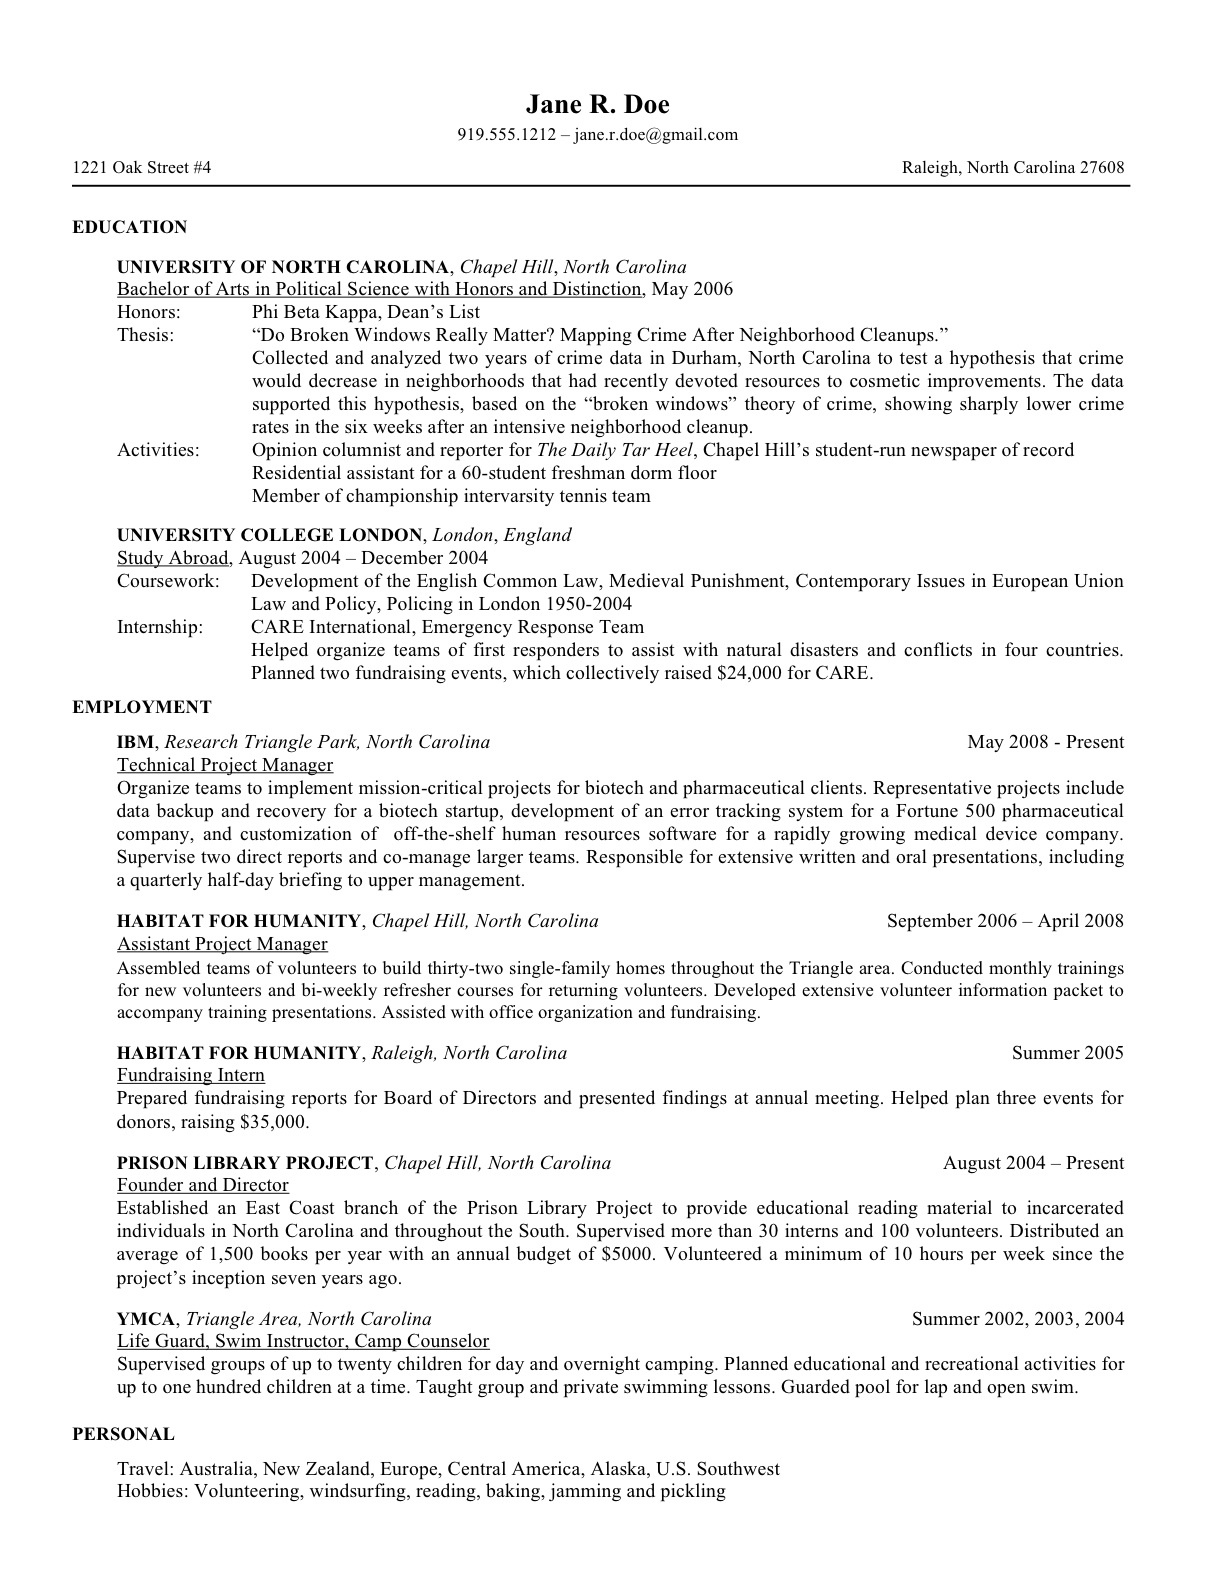 law school resume templates prepping your for of university at application tips best Resume Law School Application Resume Tips